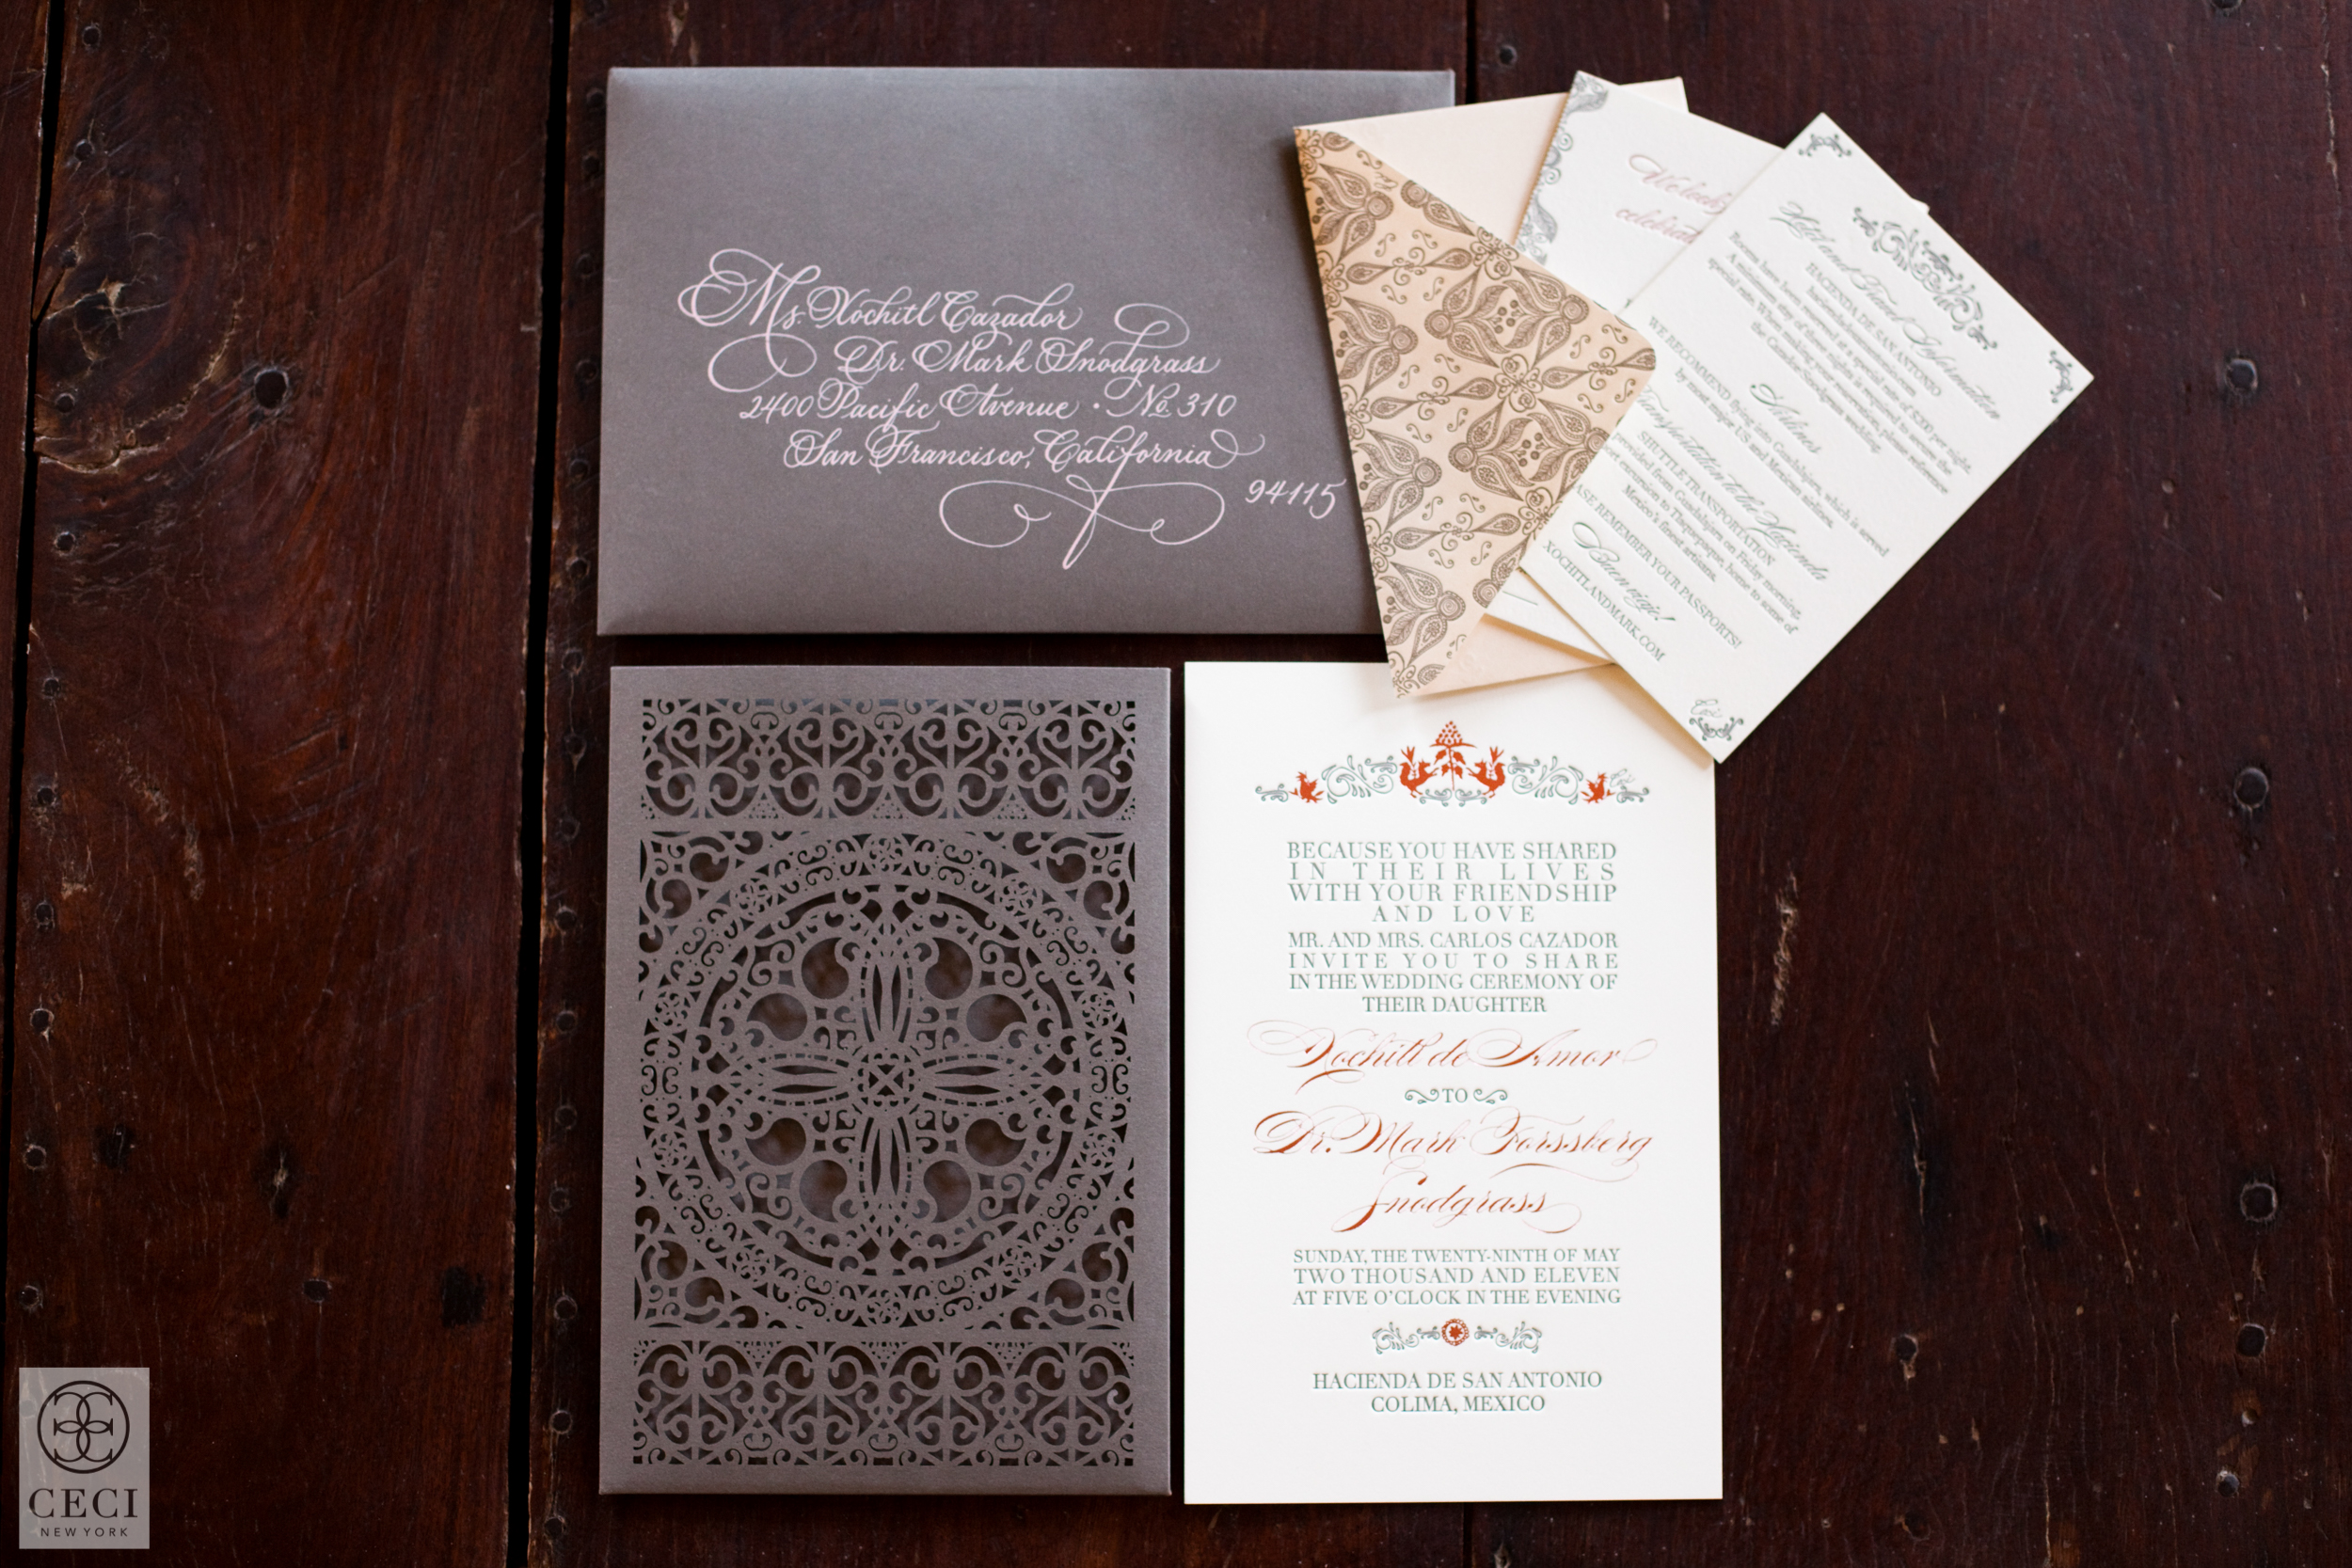 Ceci_New_York_Custom_Luxury_Wedding_LaserCut_Stationery_Personalized_Couture_Foil_Stamping_Mexico_Otomi_Chic_-2.jpg